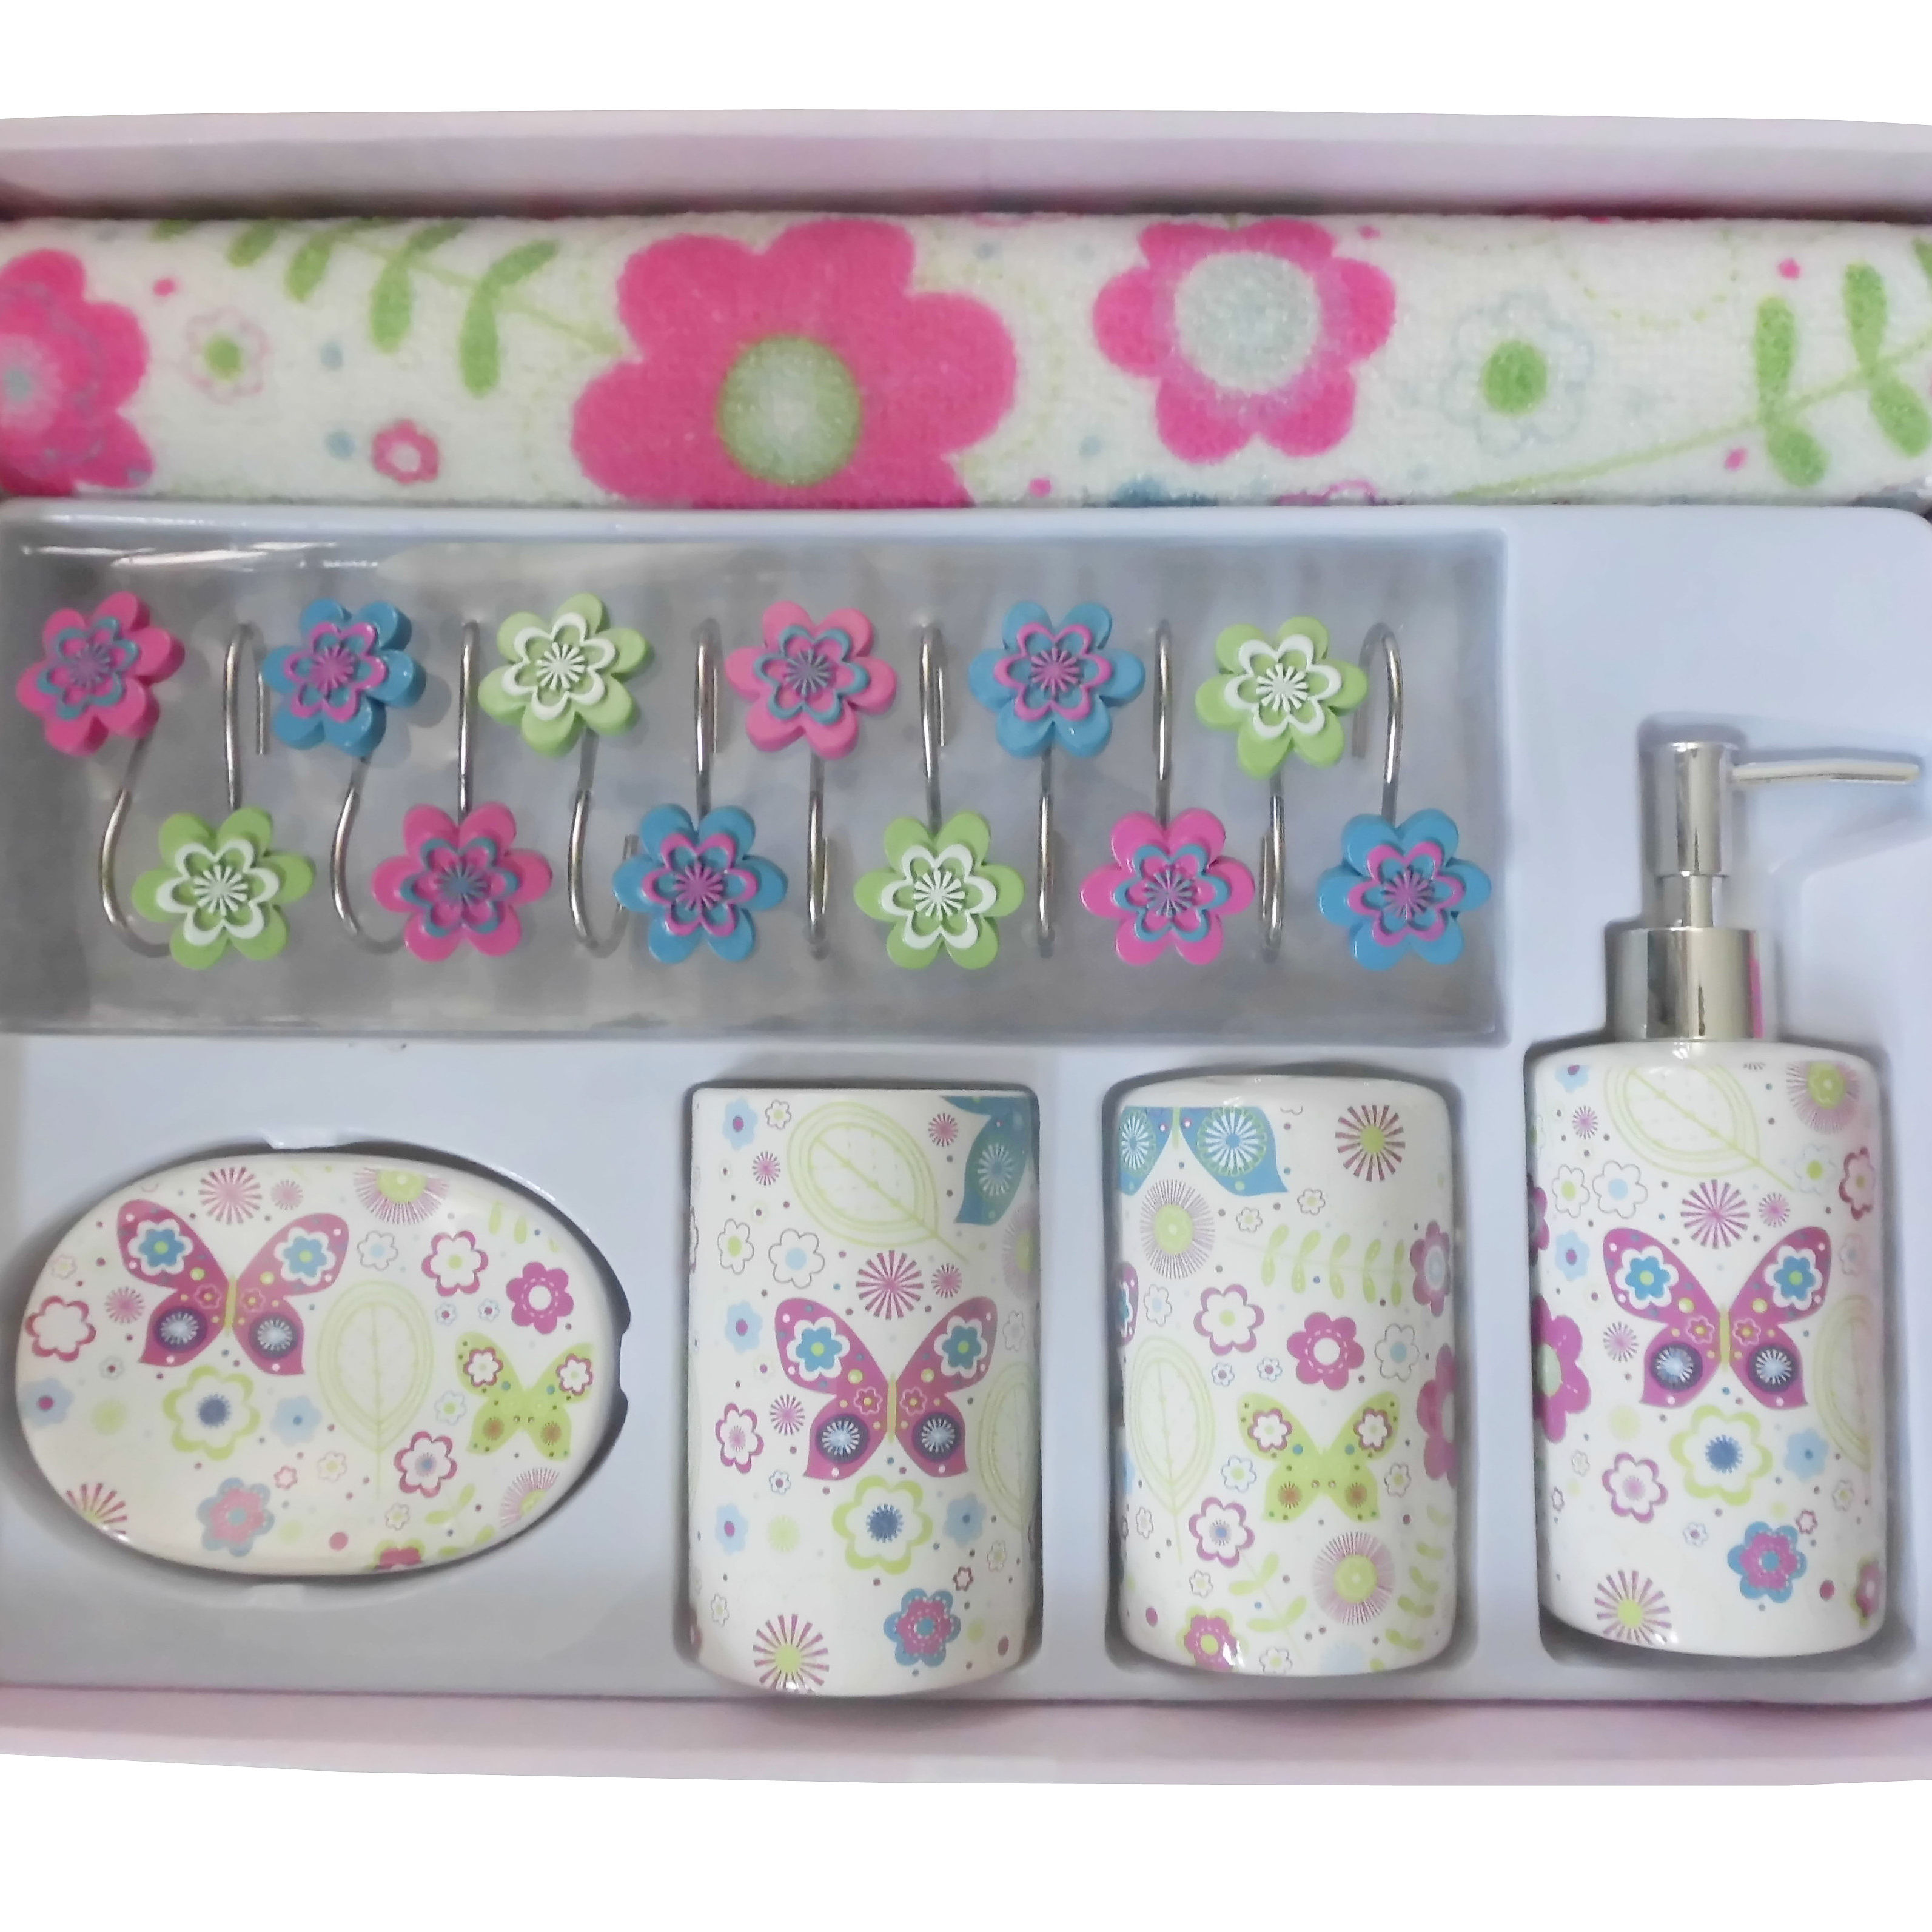 18 PCS BATHROOM SET with RESIN HOOK, CERAMIC BATHROOM TOOLS,MAT, SHOWER CURTAIN